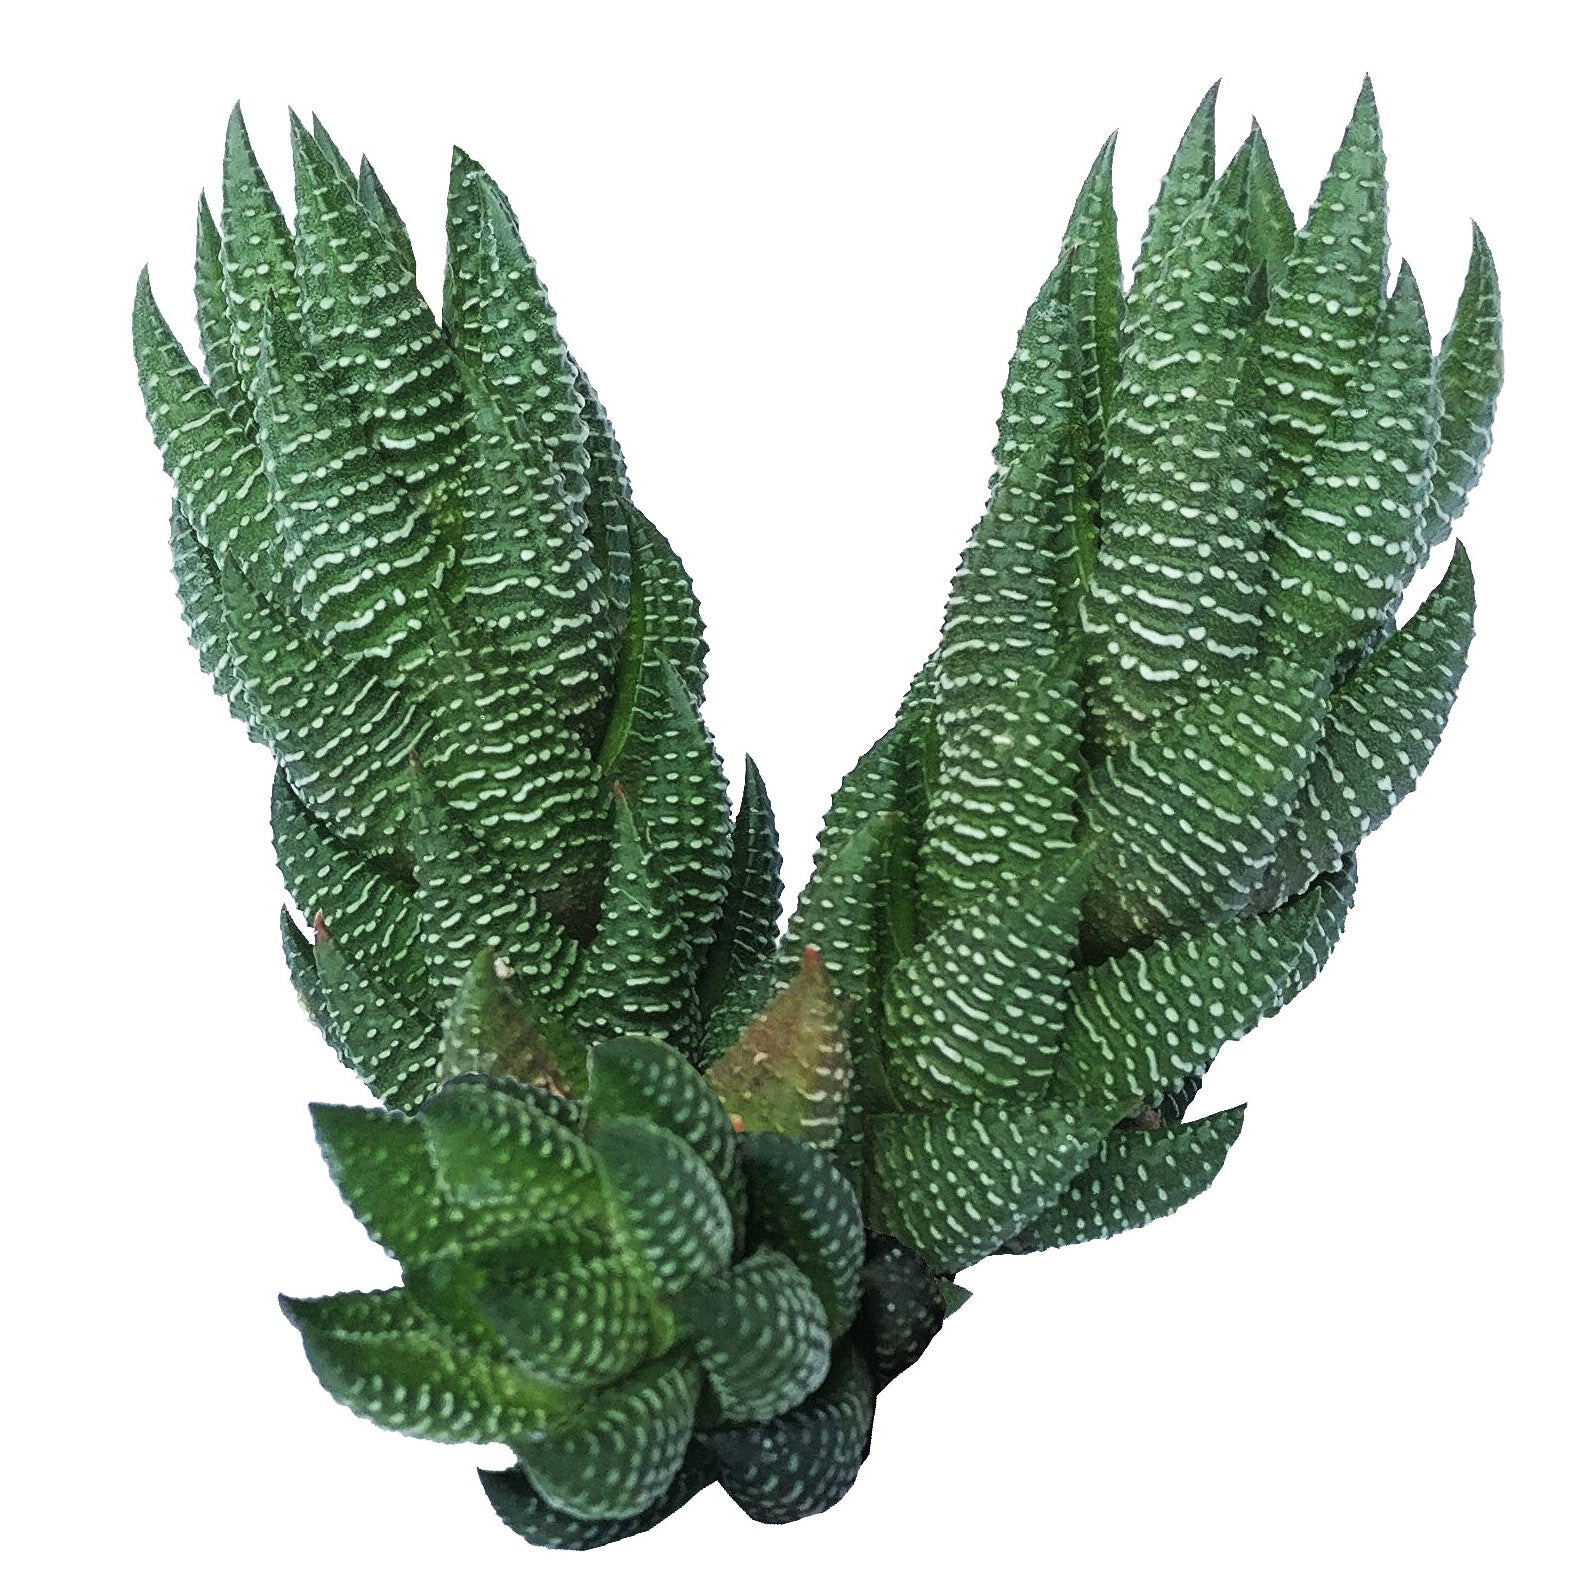 Haworthia african pearl, succulents shop in California, Succulents, Succulents shop near me, cactus, how to grow succulents, succulents store in CA, succulent plant, succulents garden, Haworthia african pearl in California, How to grow Haworthia african pearl